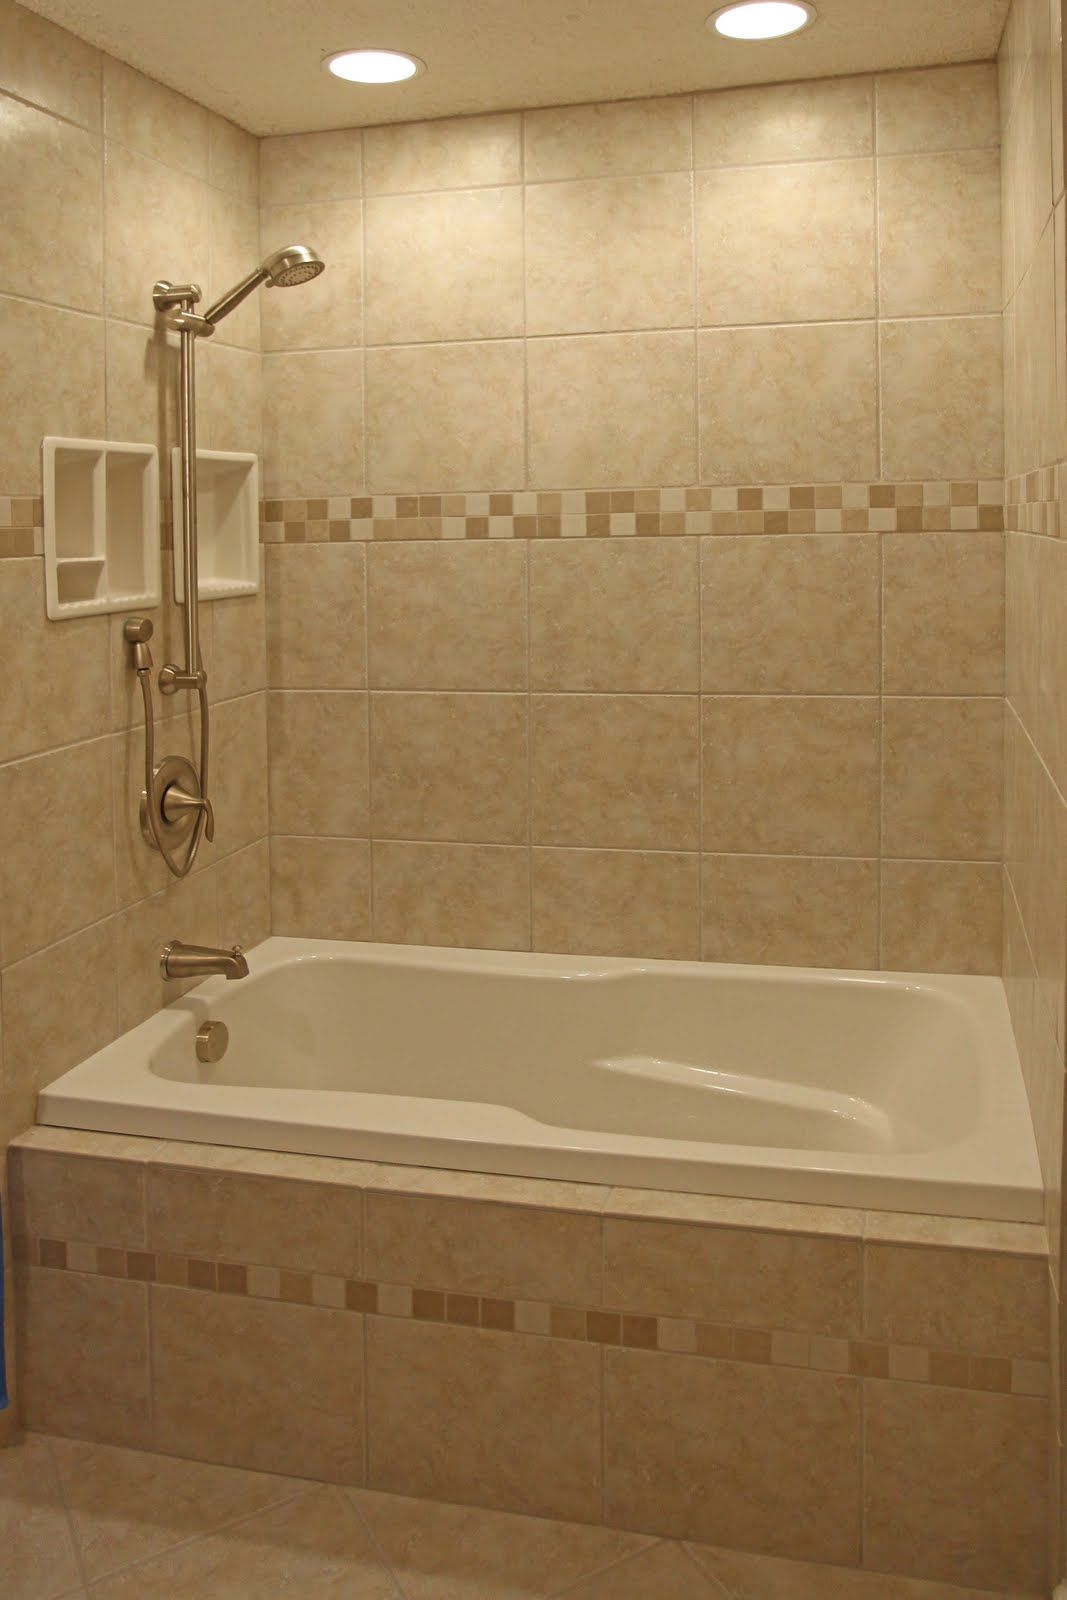 Bathroom Remodel Design Ideas best small bathroom remodel 111 design ideas Shower And Bath Remodel Bathroom Shower Design Ideas Ceramic Tile Bathroom Shower Design